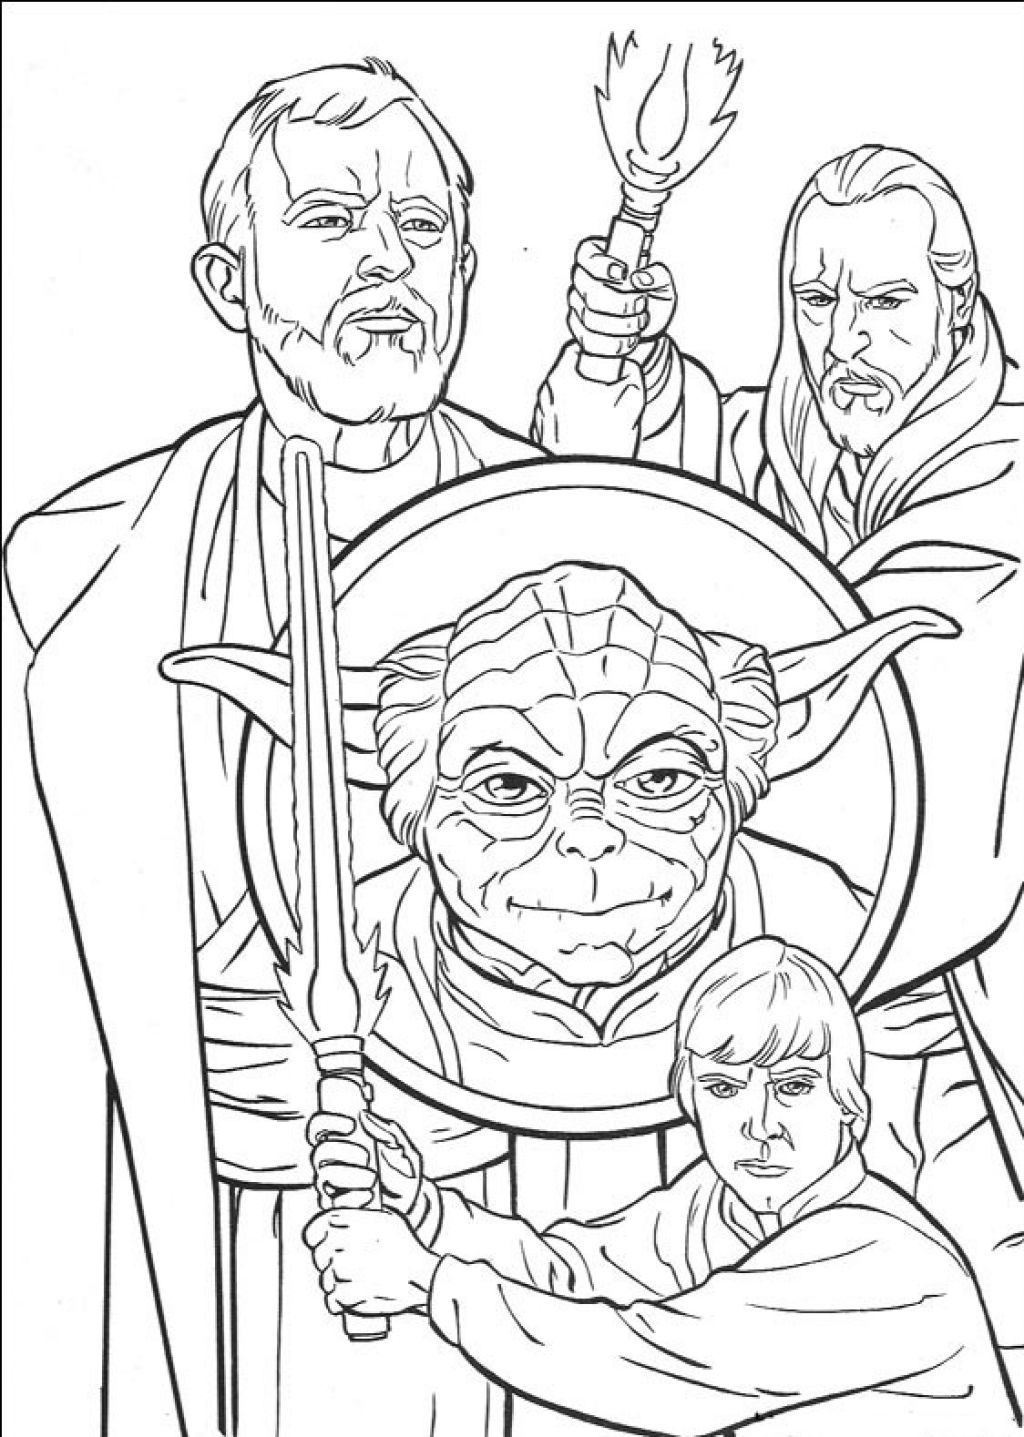 Online star wars coloring pages - Coloring Pages Star Wars